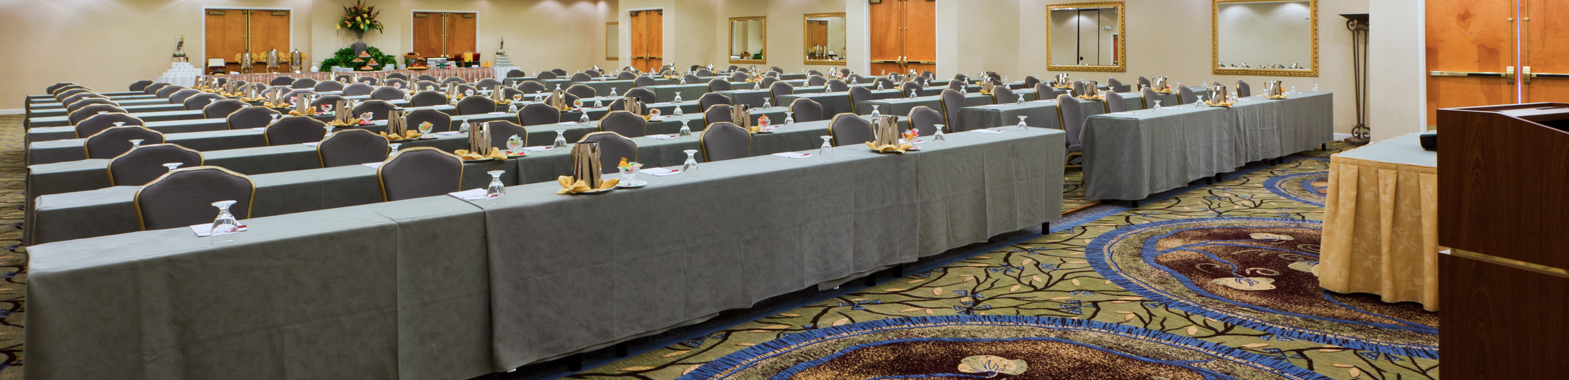 Meeting Packages at Crowne Plaza Dulles Airport Hotel